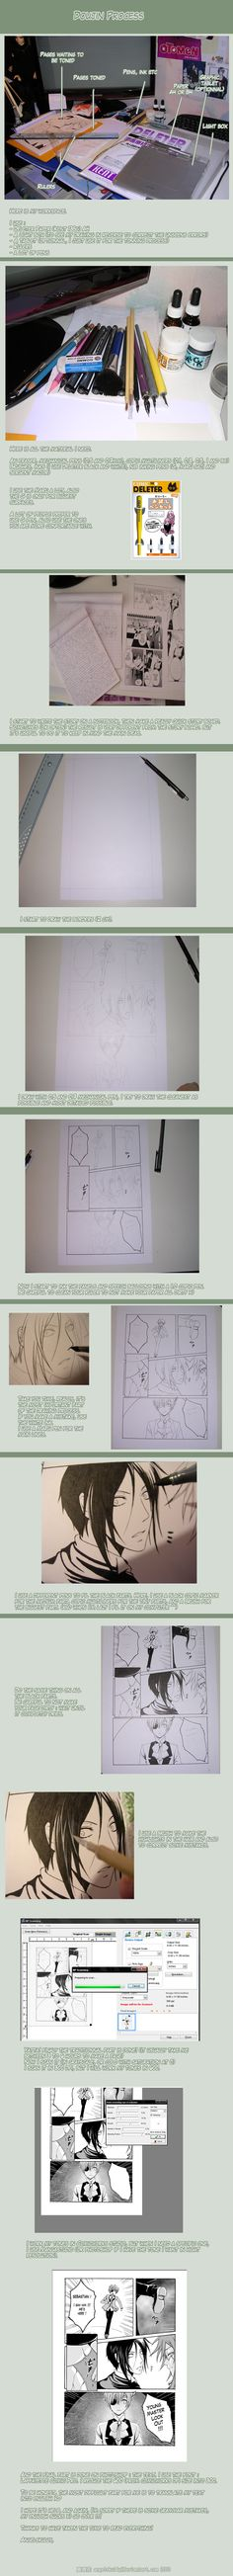 doujin process by kuro mai deviantart com on deviantart